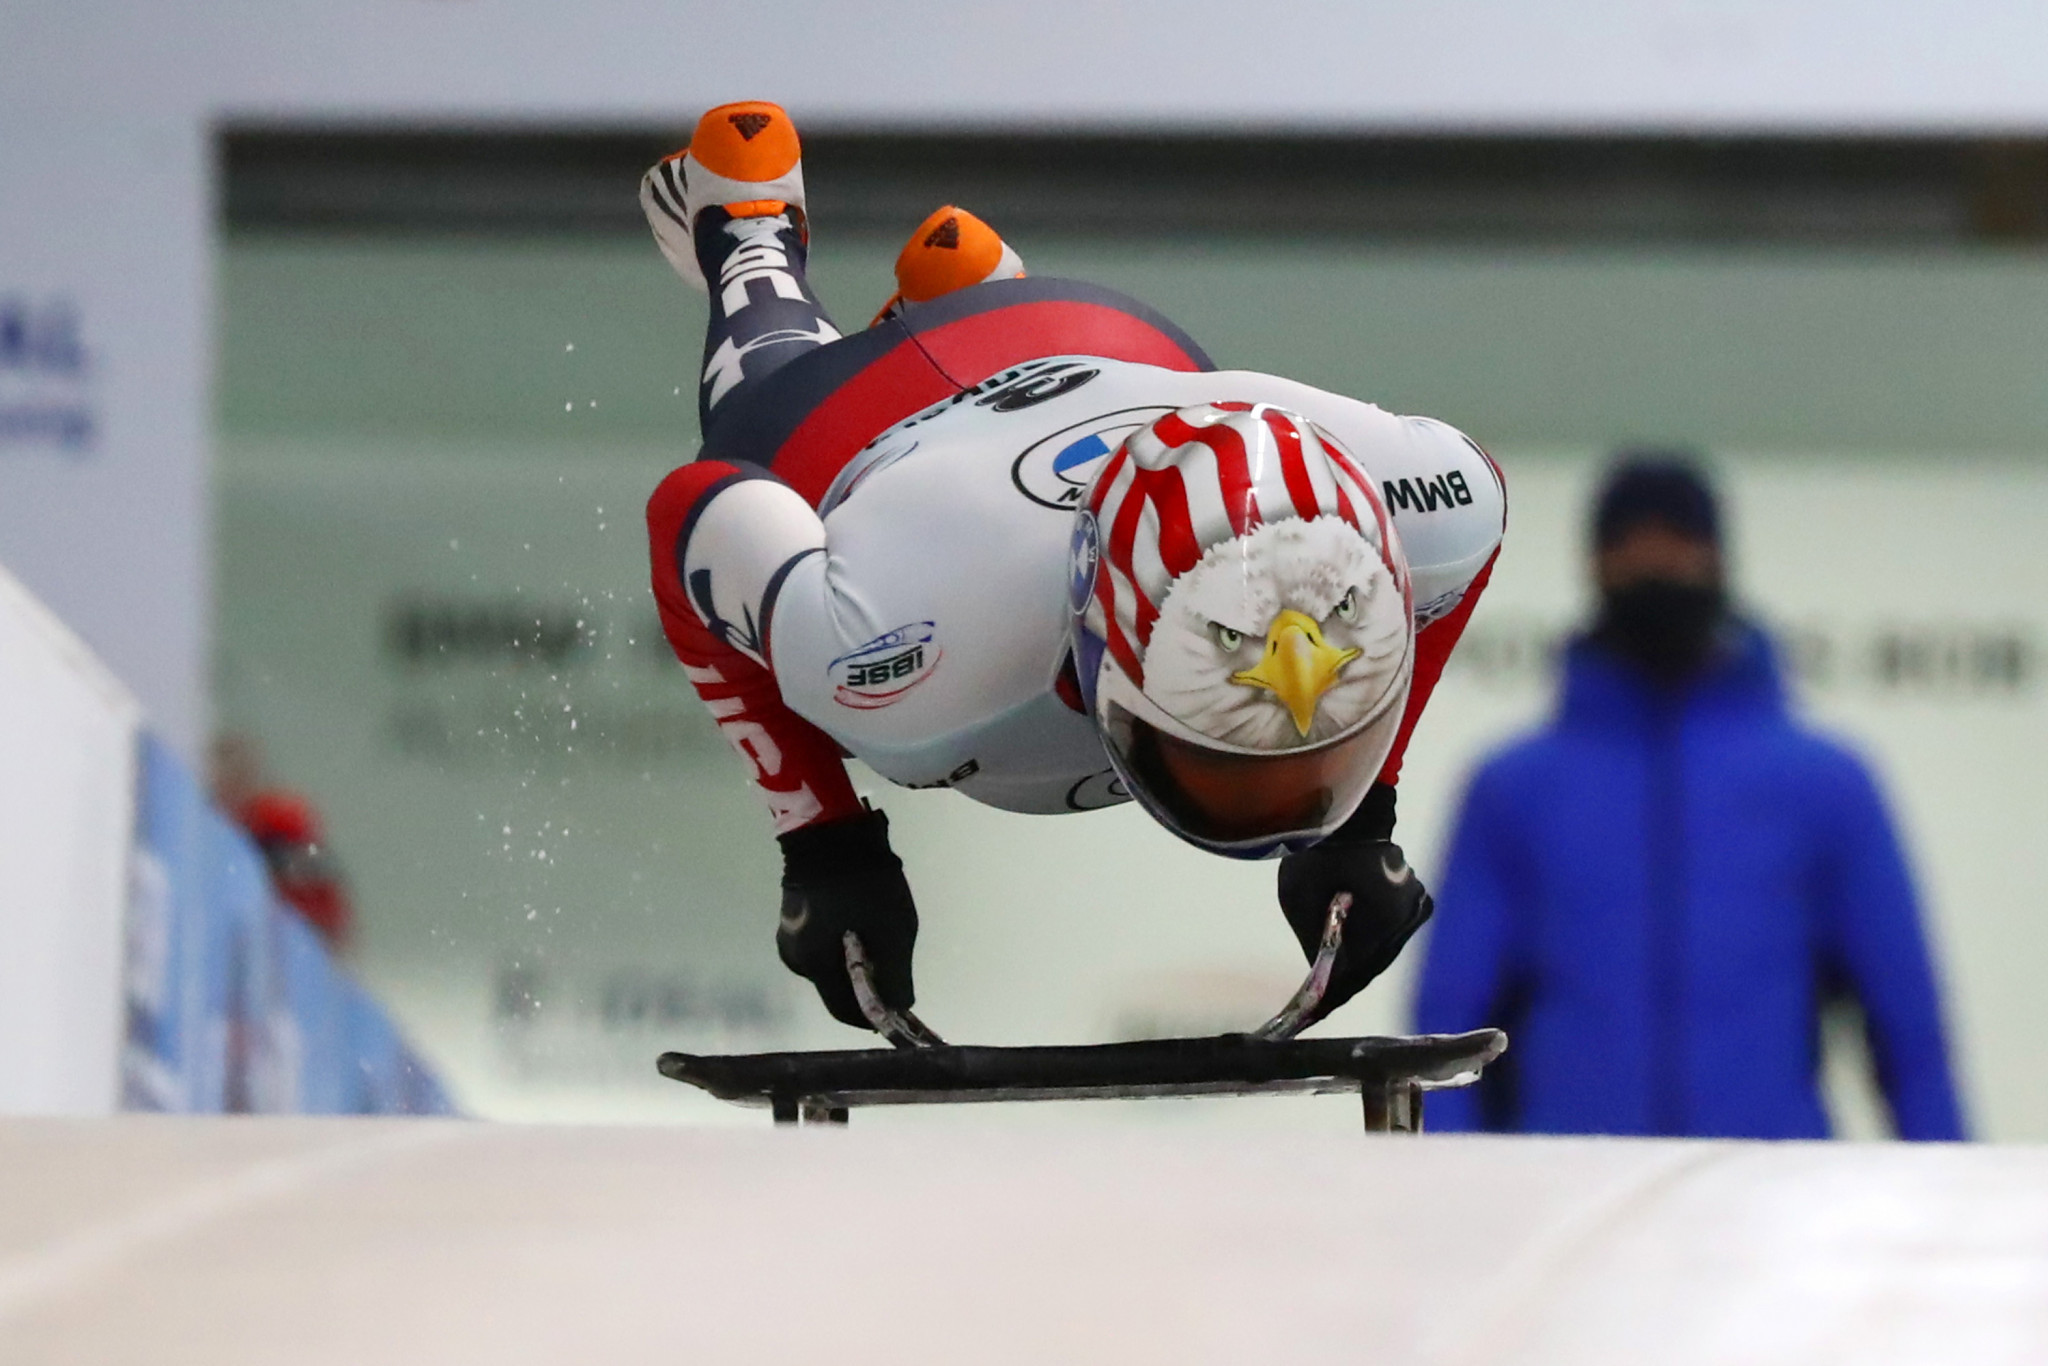 USA Bobsled and Skeleton announces Lincoln Electric as official supplier